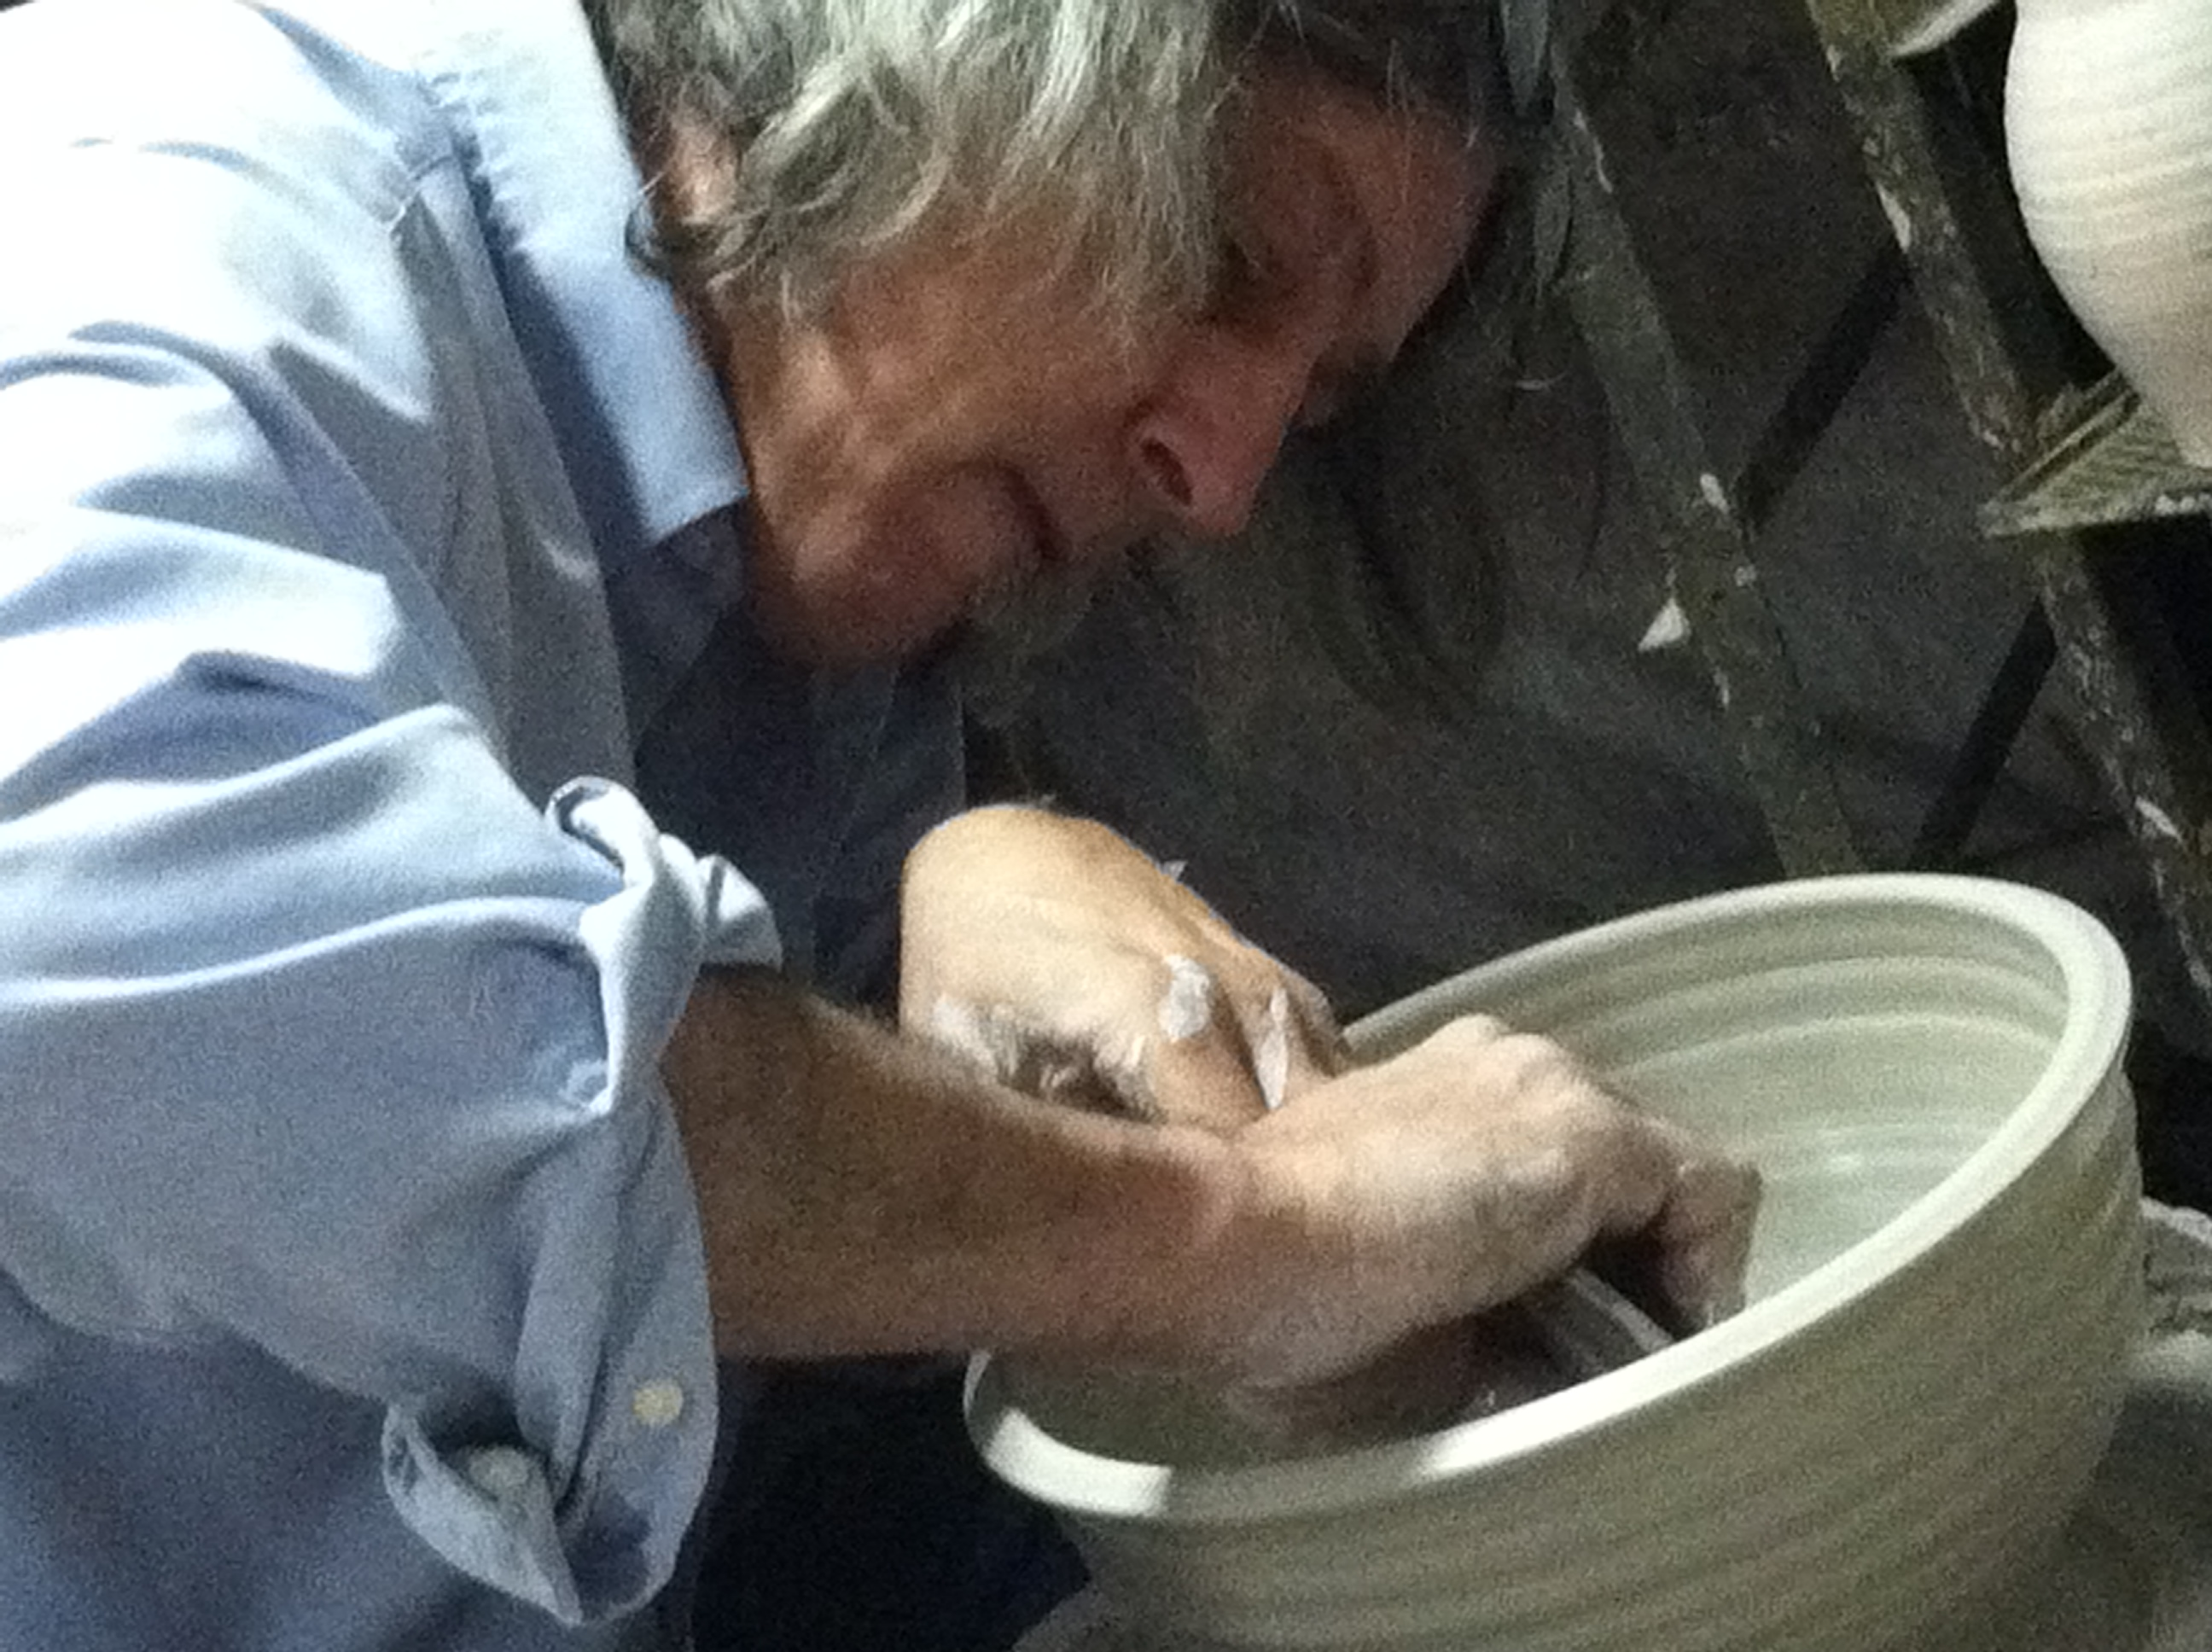 Steve Smith at work throwing a large bowl